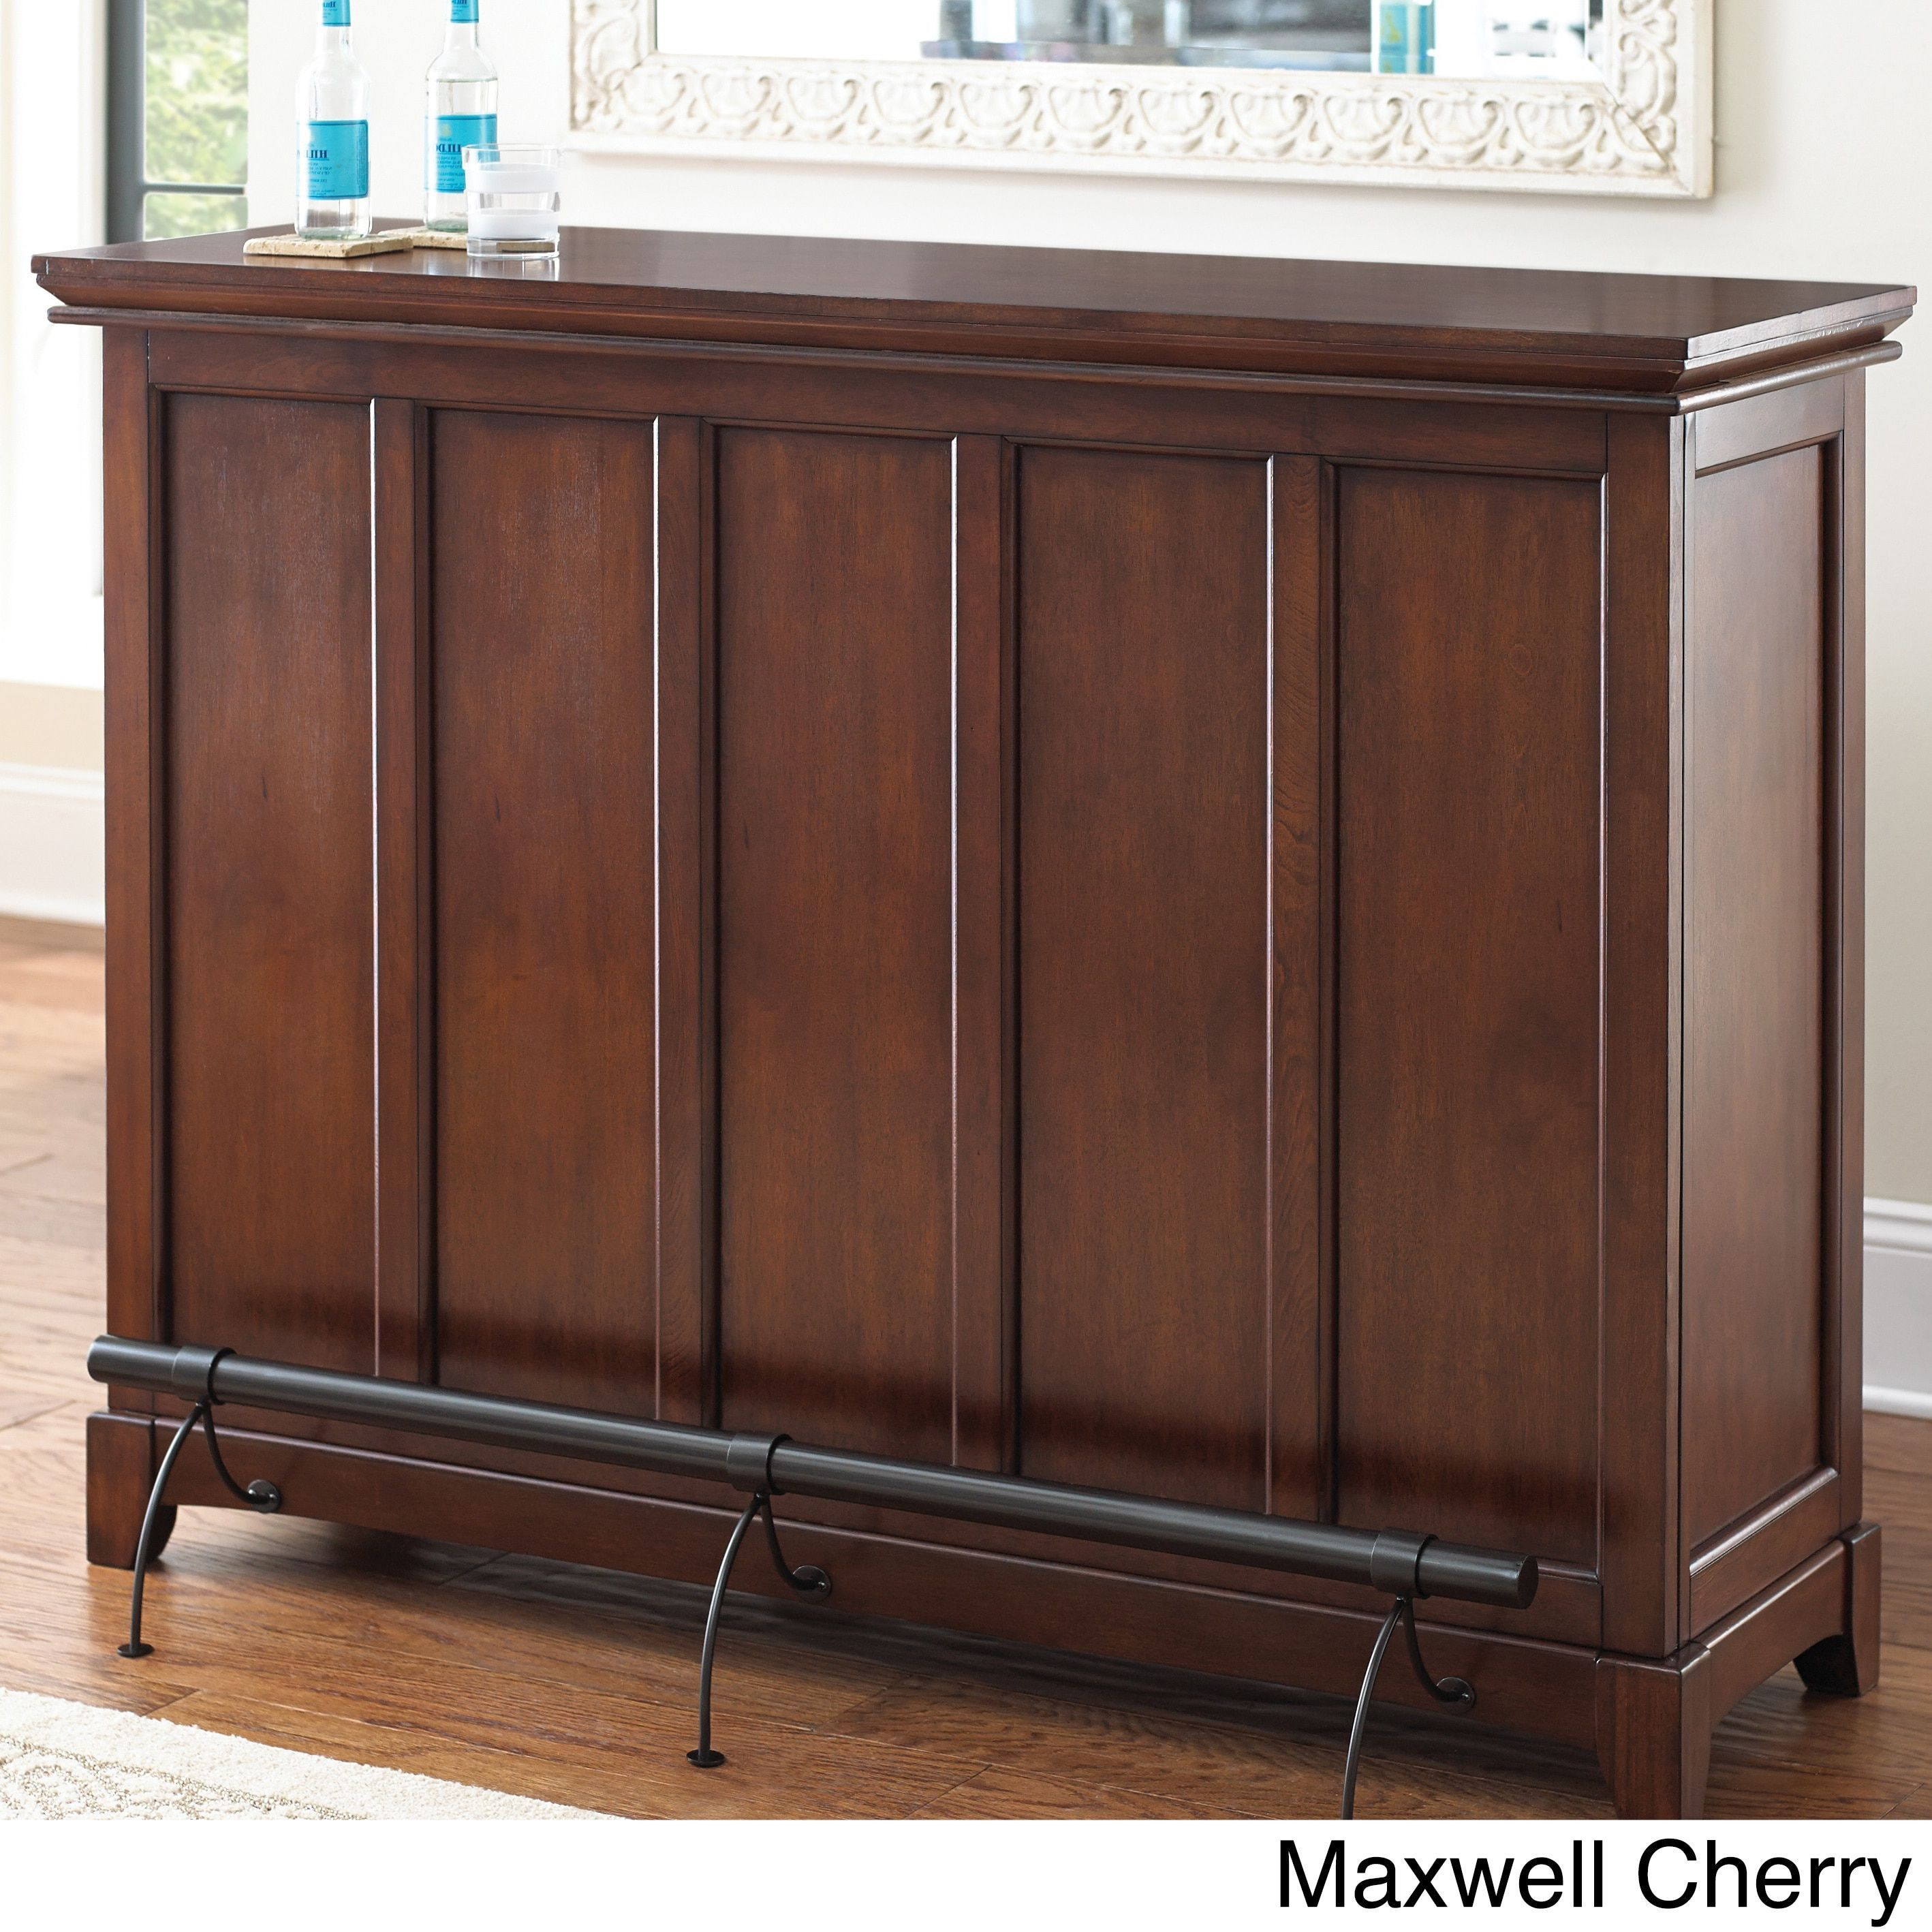 Greyson living maxwell home bar with foot rail maxwell oak counter